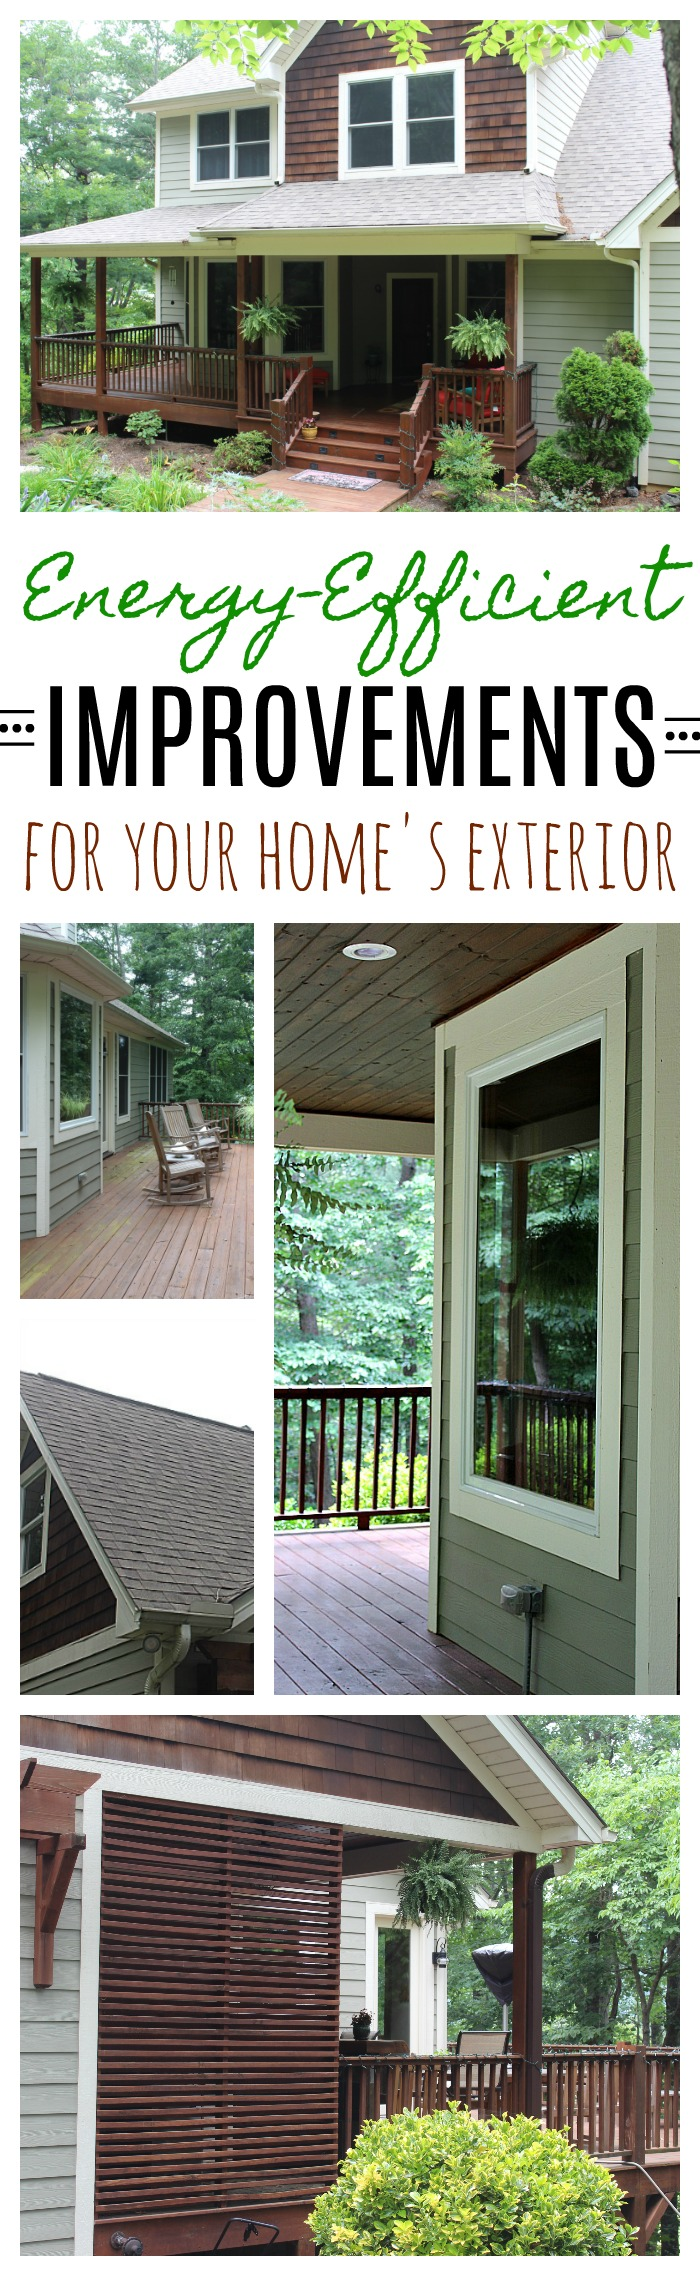 energy efficient improvements for your home's exterior - the